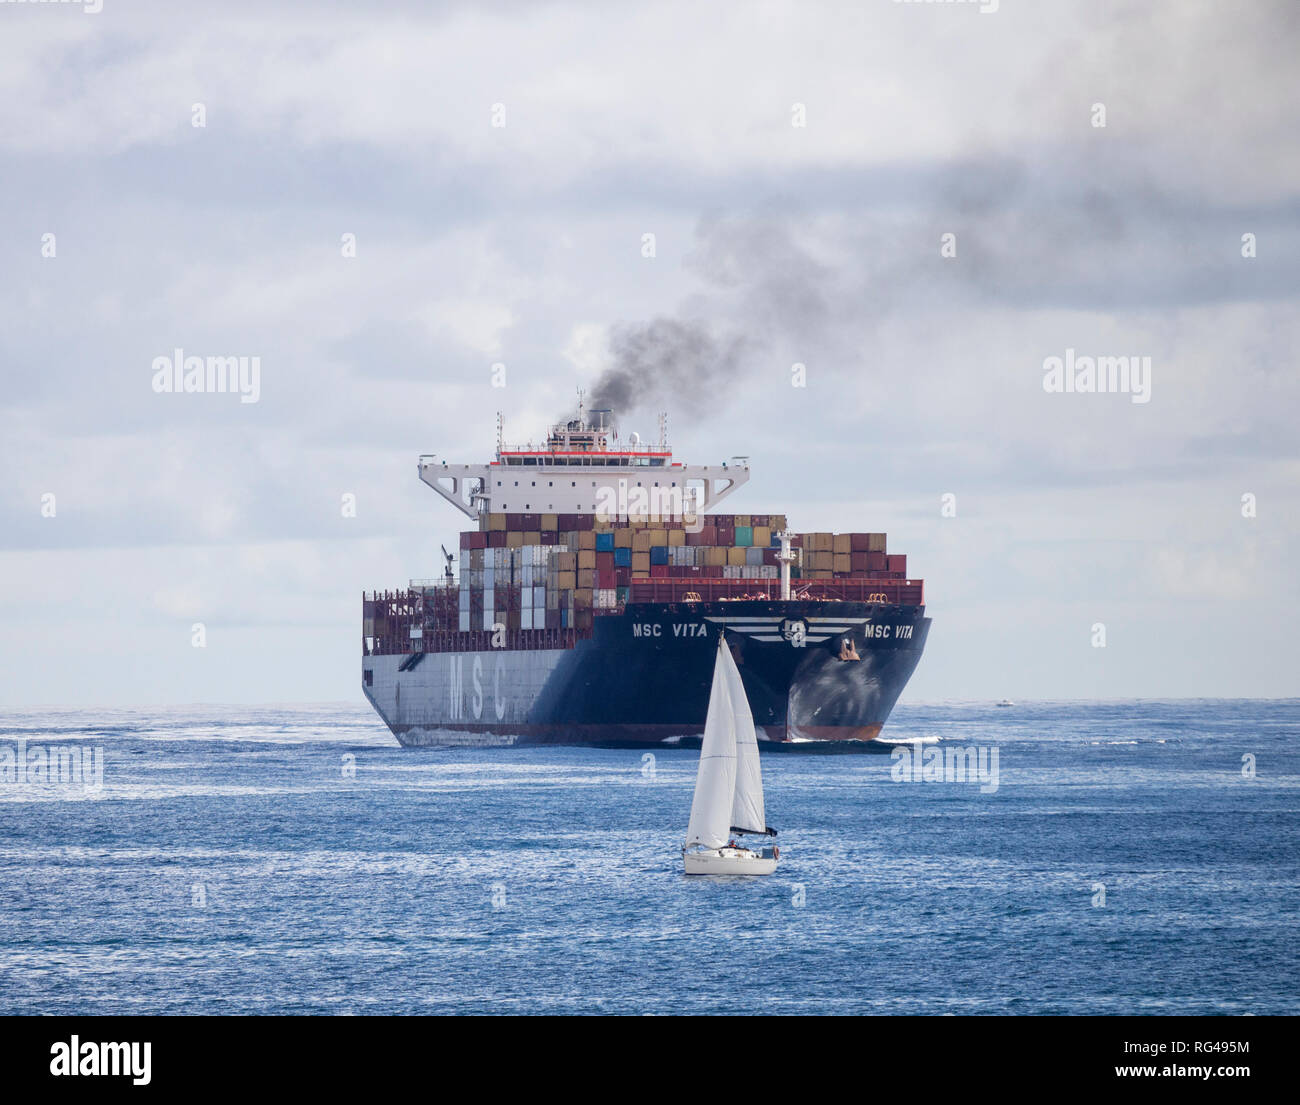 Container ship emitting black smoke passing small sailing boats as it enters port. - Stock Image